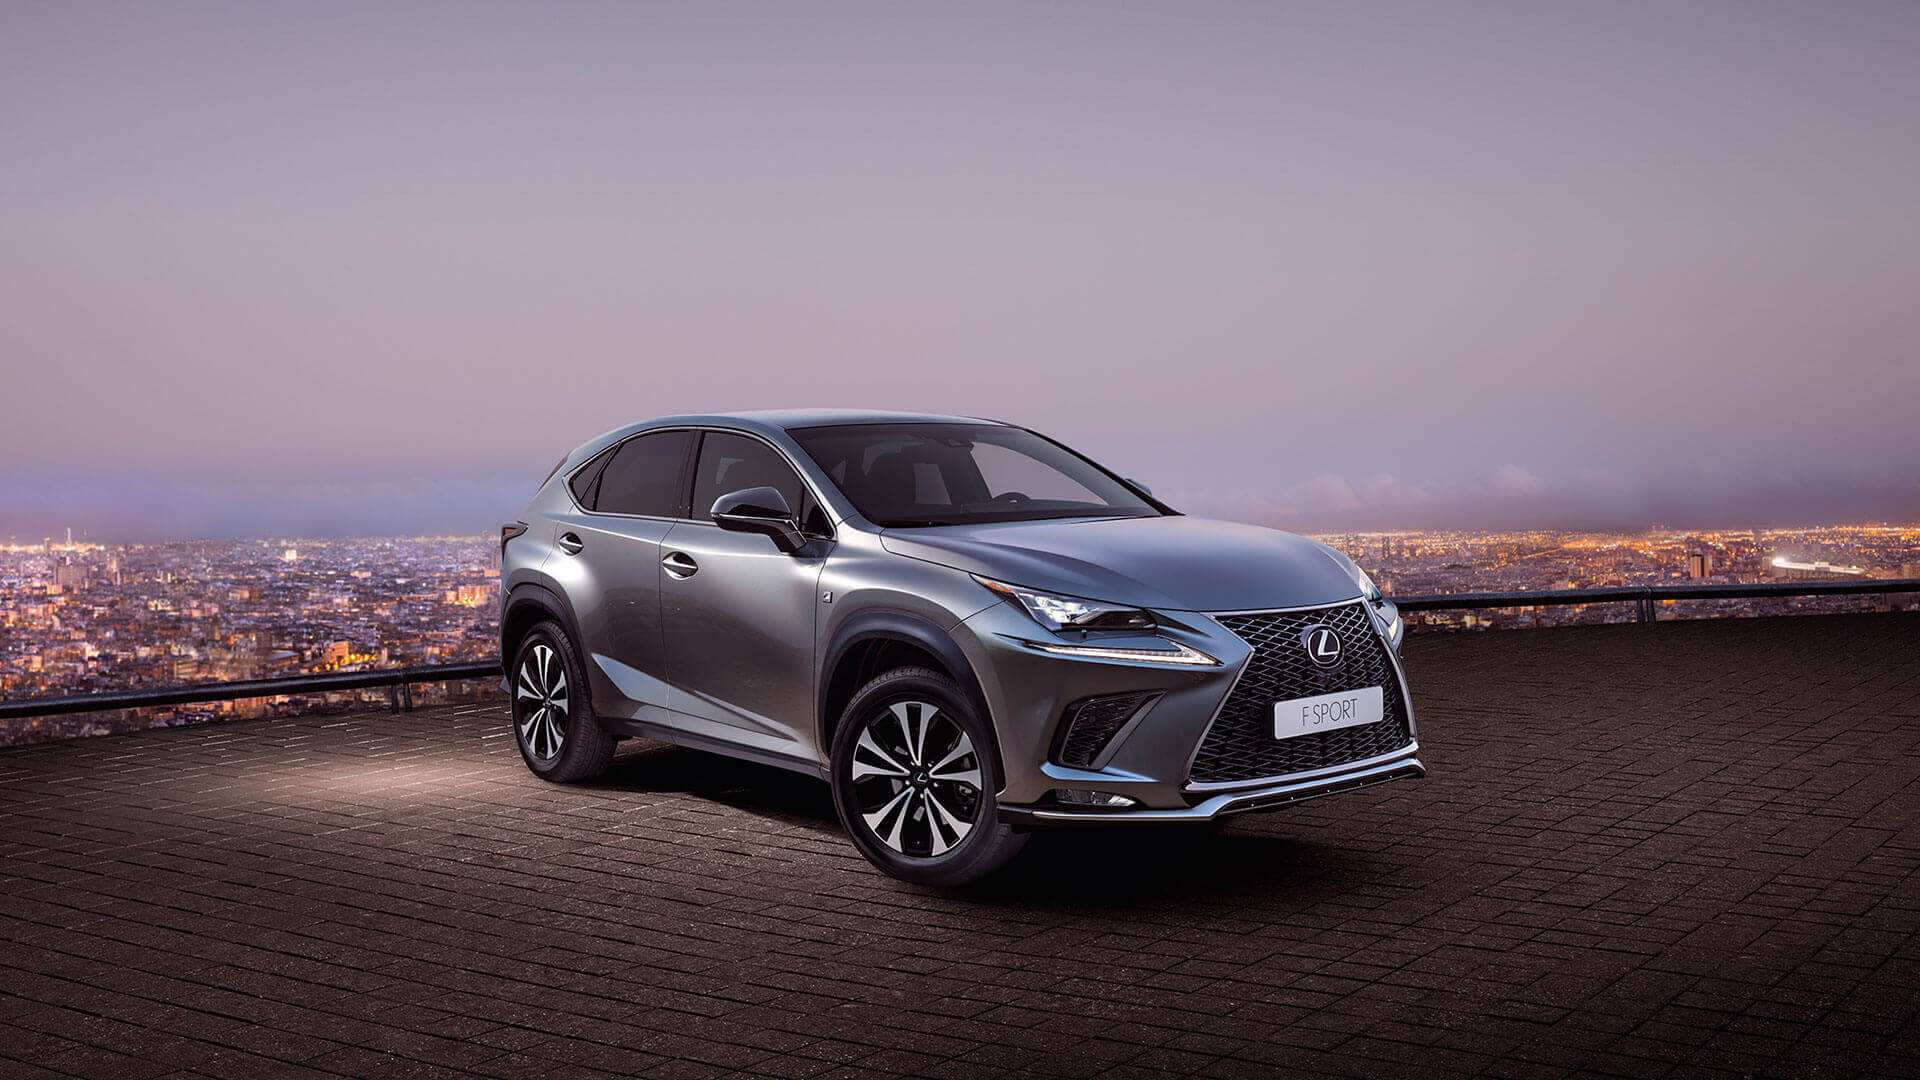 25 All New Nowy Lexus Nx 2019 Wallpaper